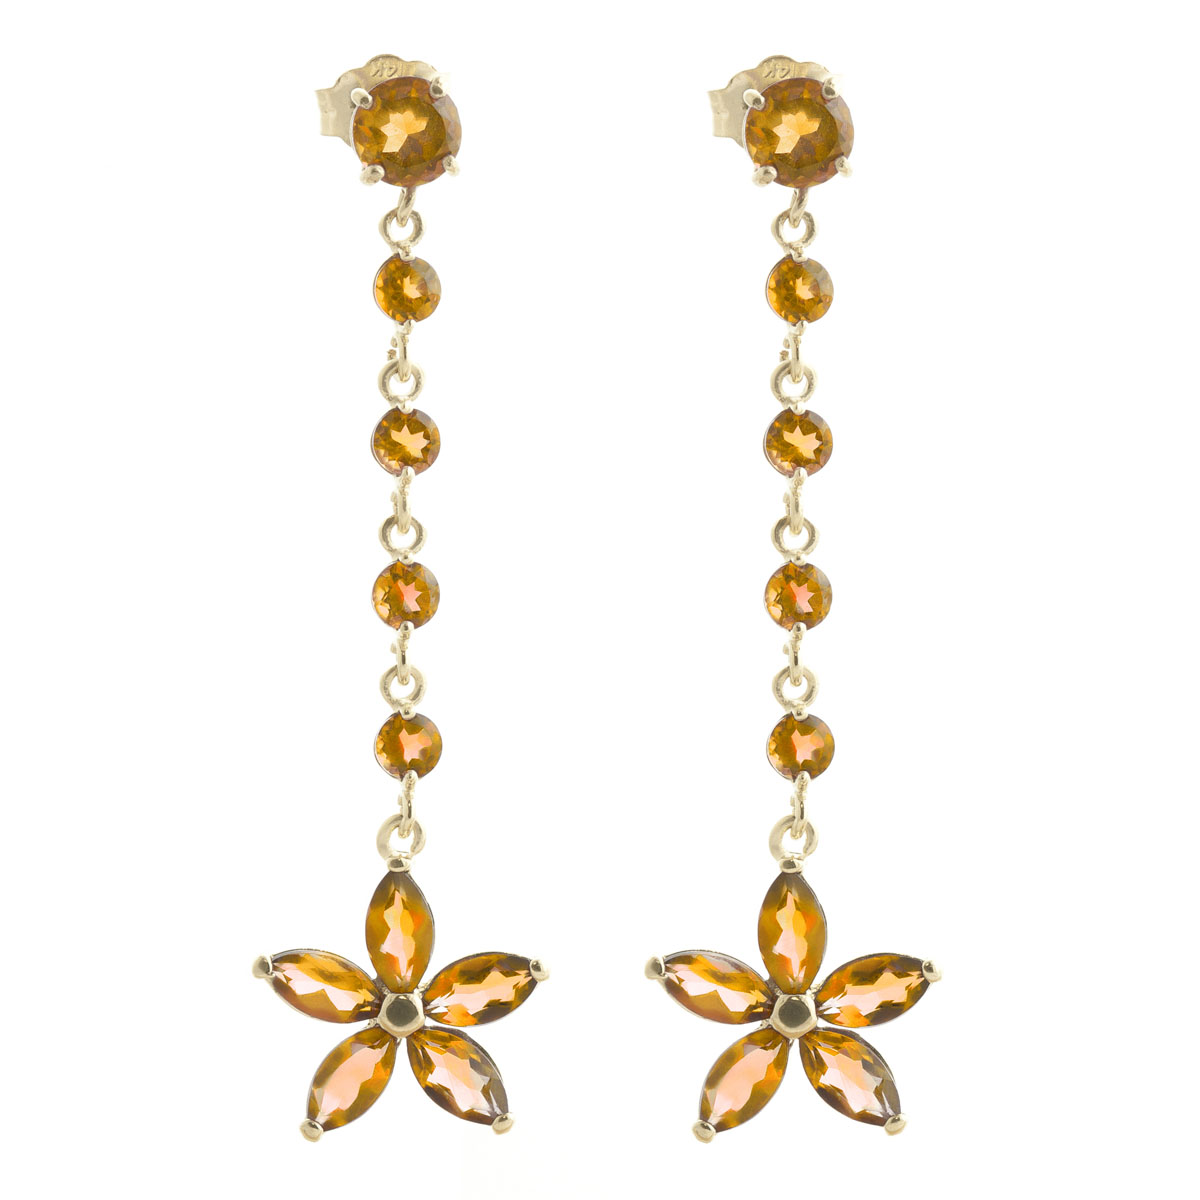 Citrine Daisy Chain Drop Earrings 4.8 ctw in 9ct Gold